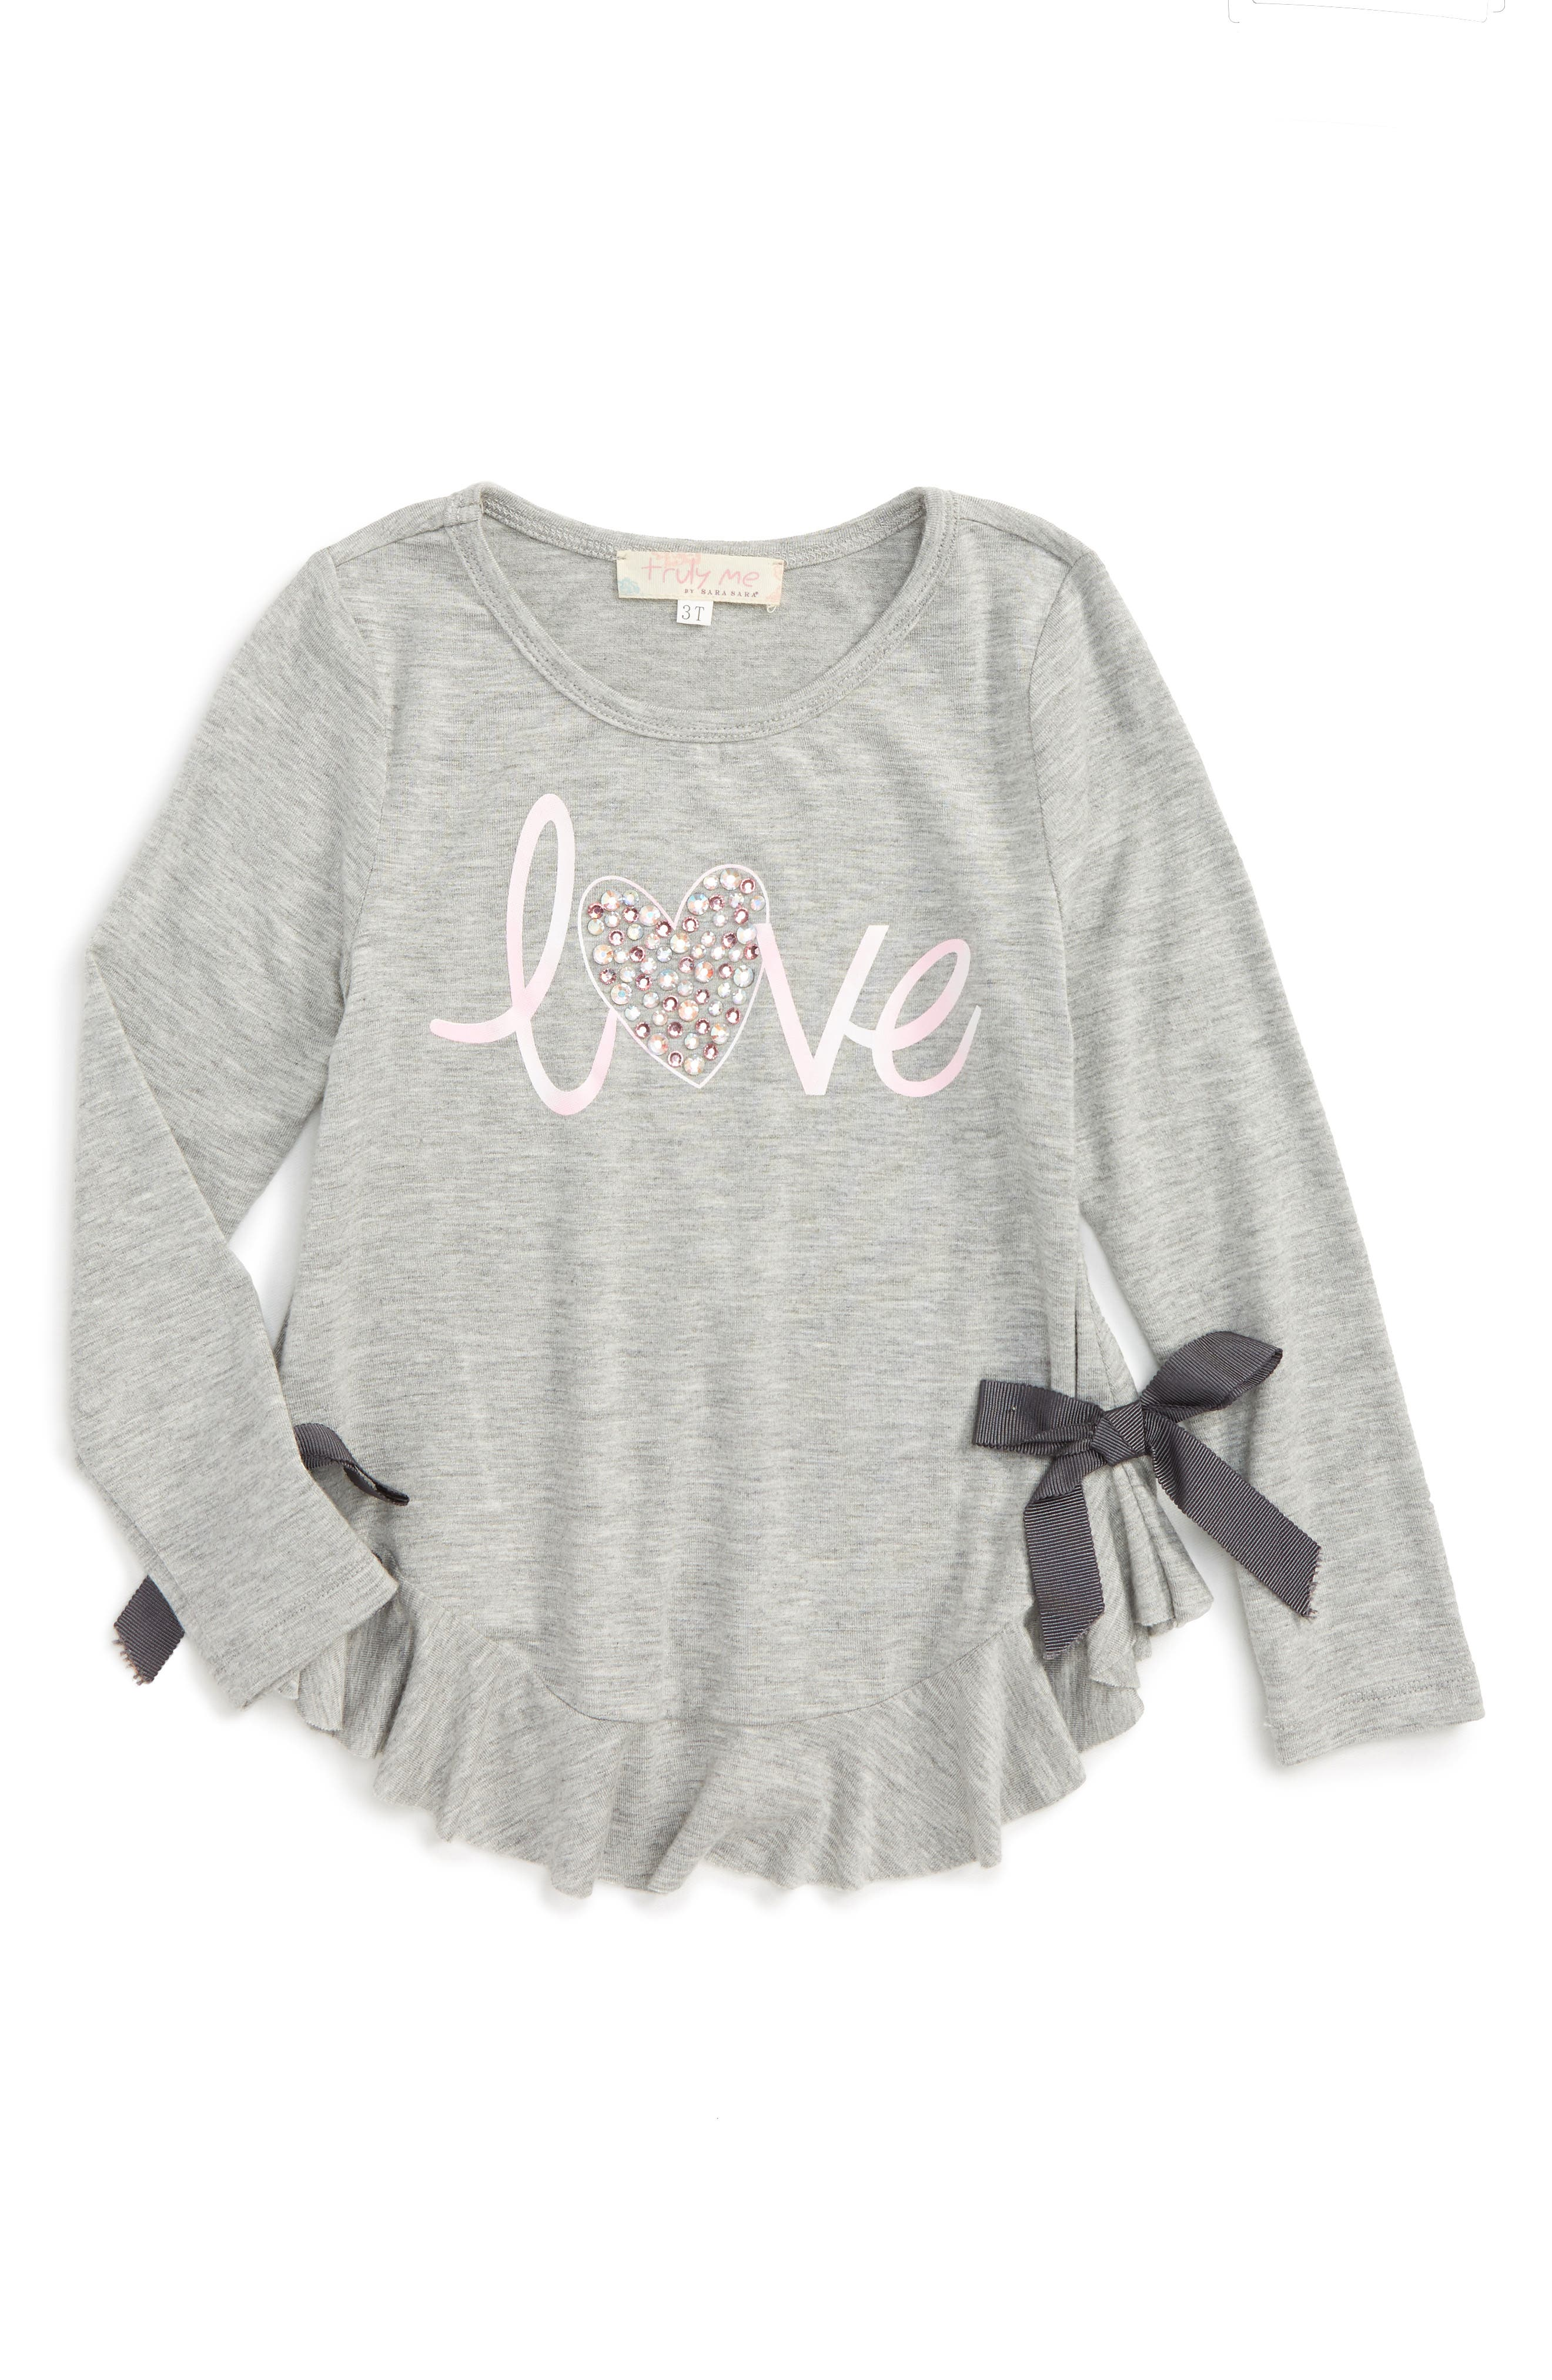 Main Image - Truly Me Love Embellished Graphic Tee (Toddler Girls & Little Girls)